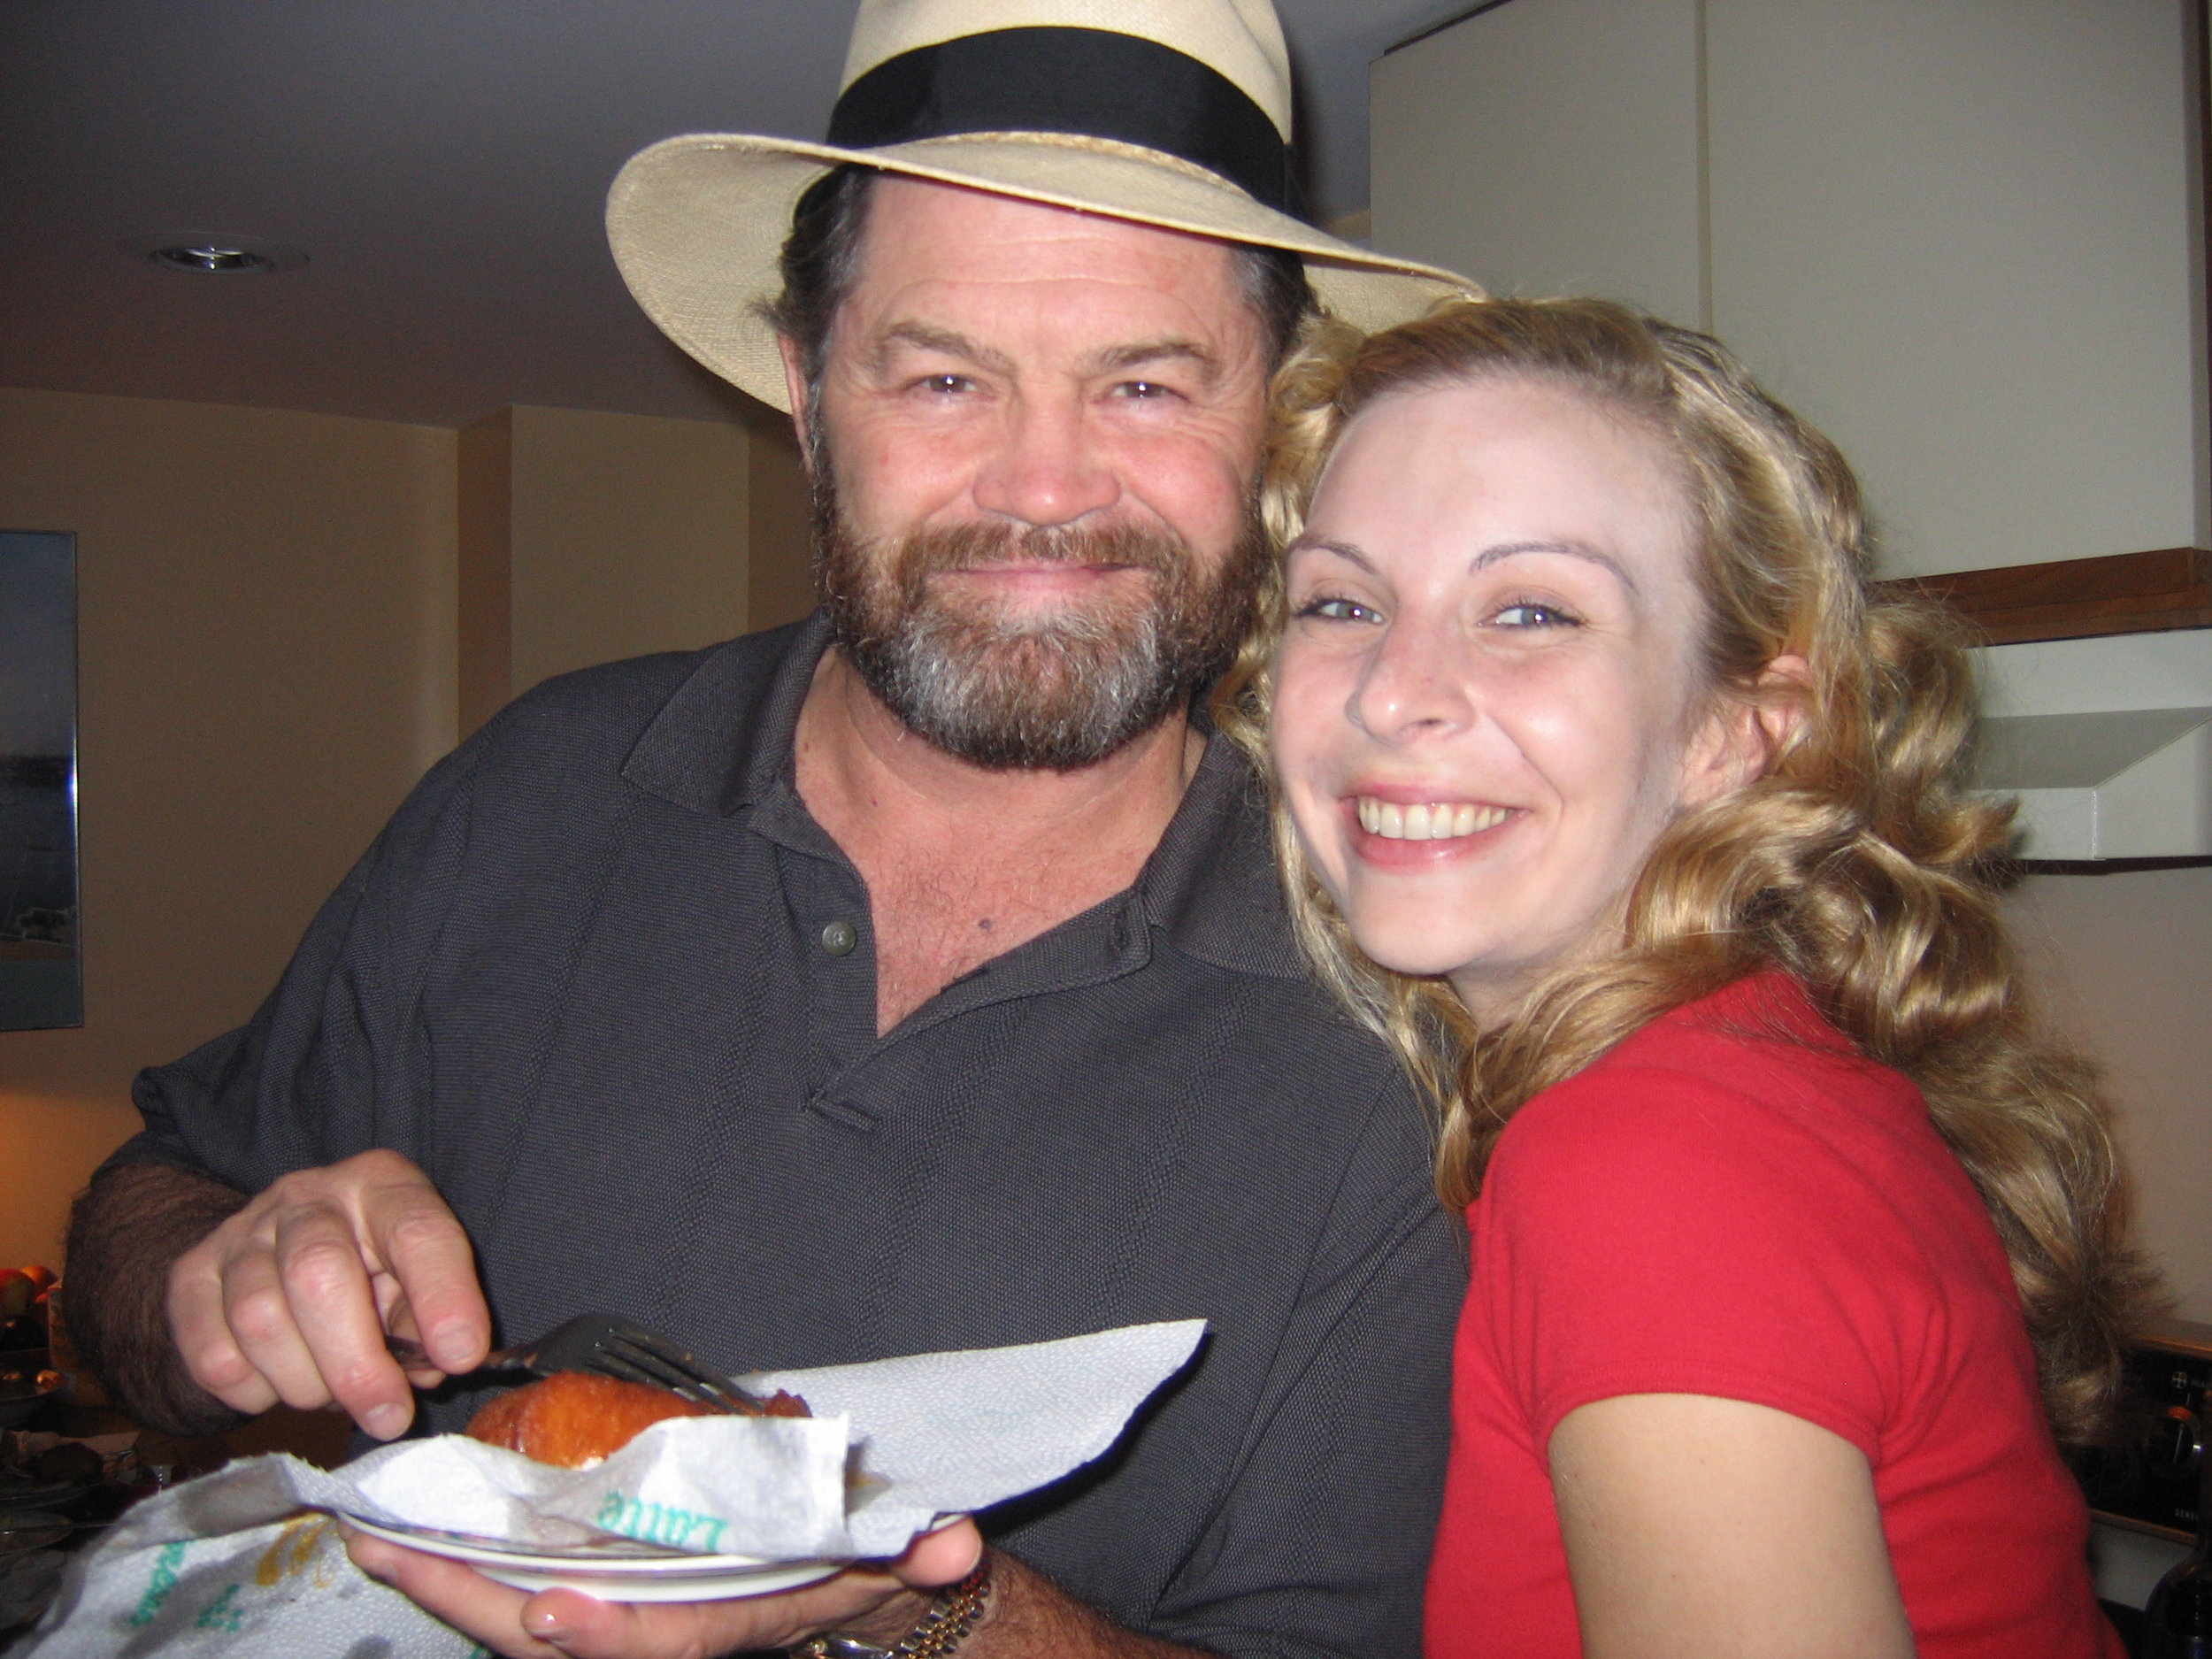 Sharing a fried Twinkie with our Charlemagne, Micky Dolenz.